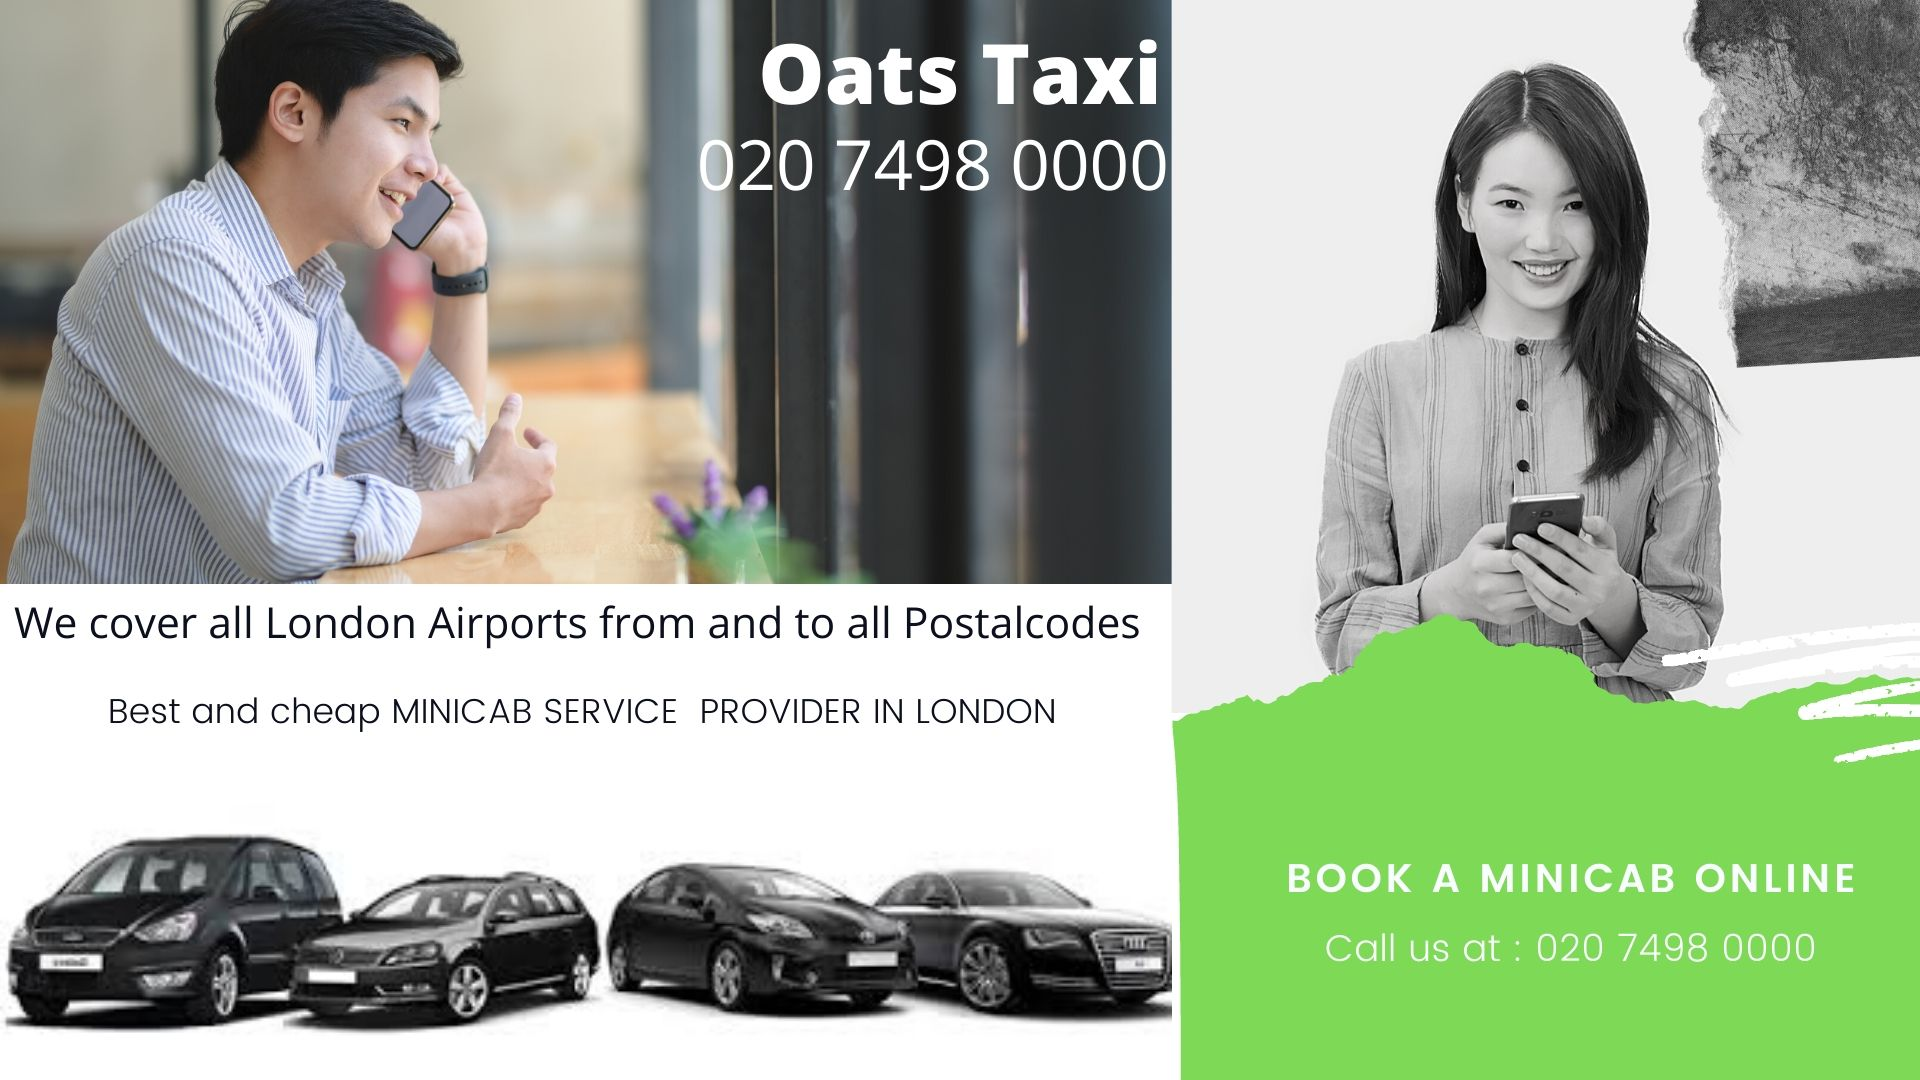 Minicab Near ELSYNGE ROAD, Battersea SW11, Minicab From Battersea SW11 To Gatwick Airport